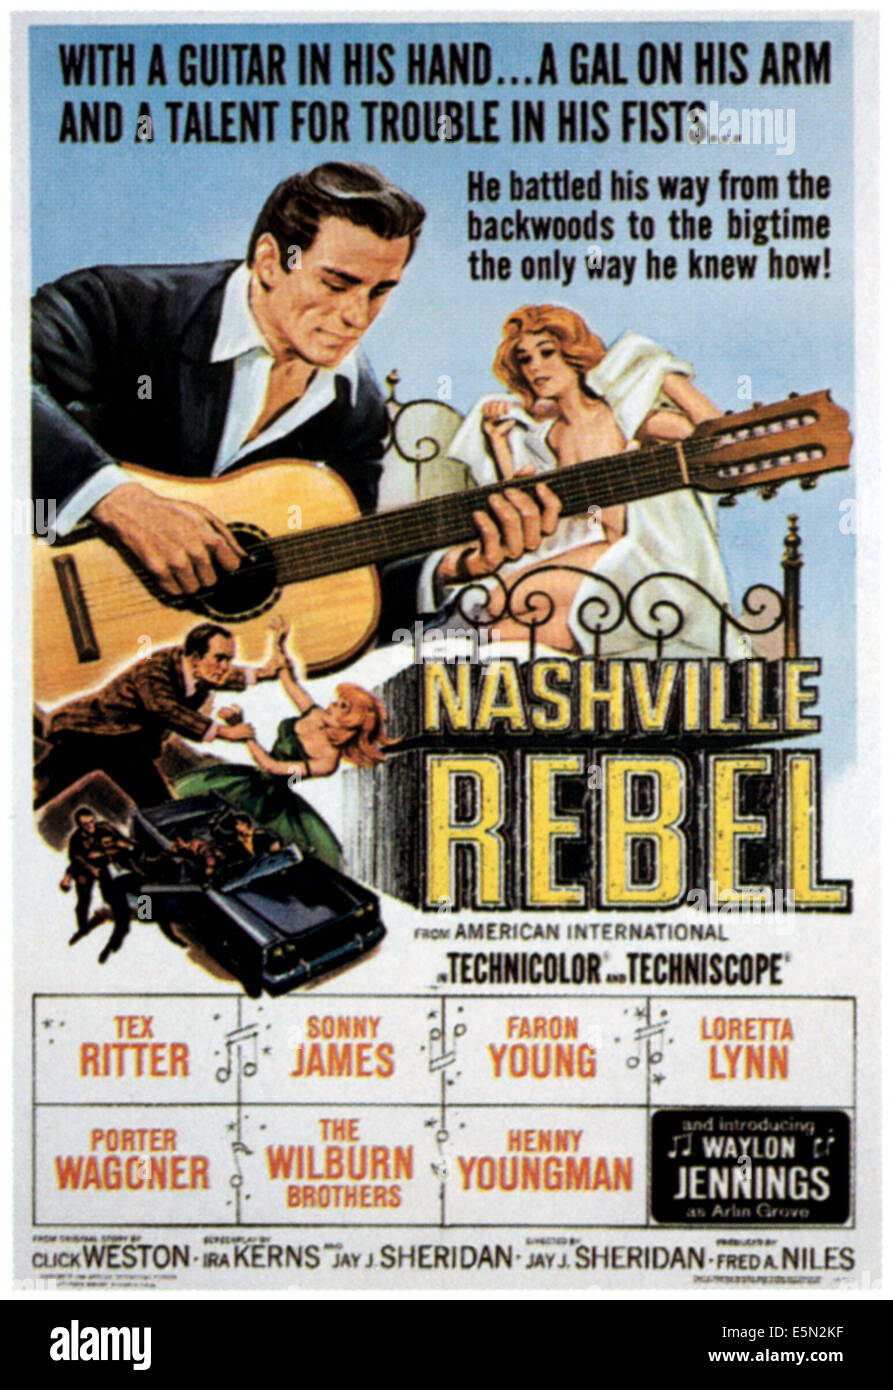 NASHVILLE REBEL, 1966 - Stock Image